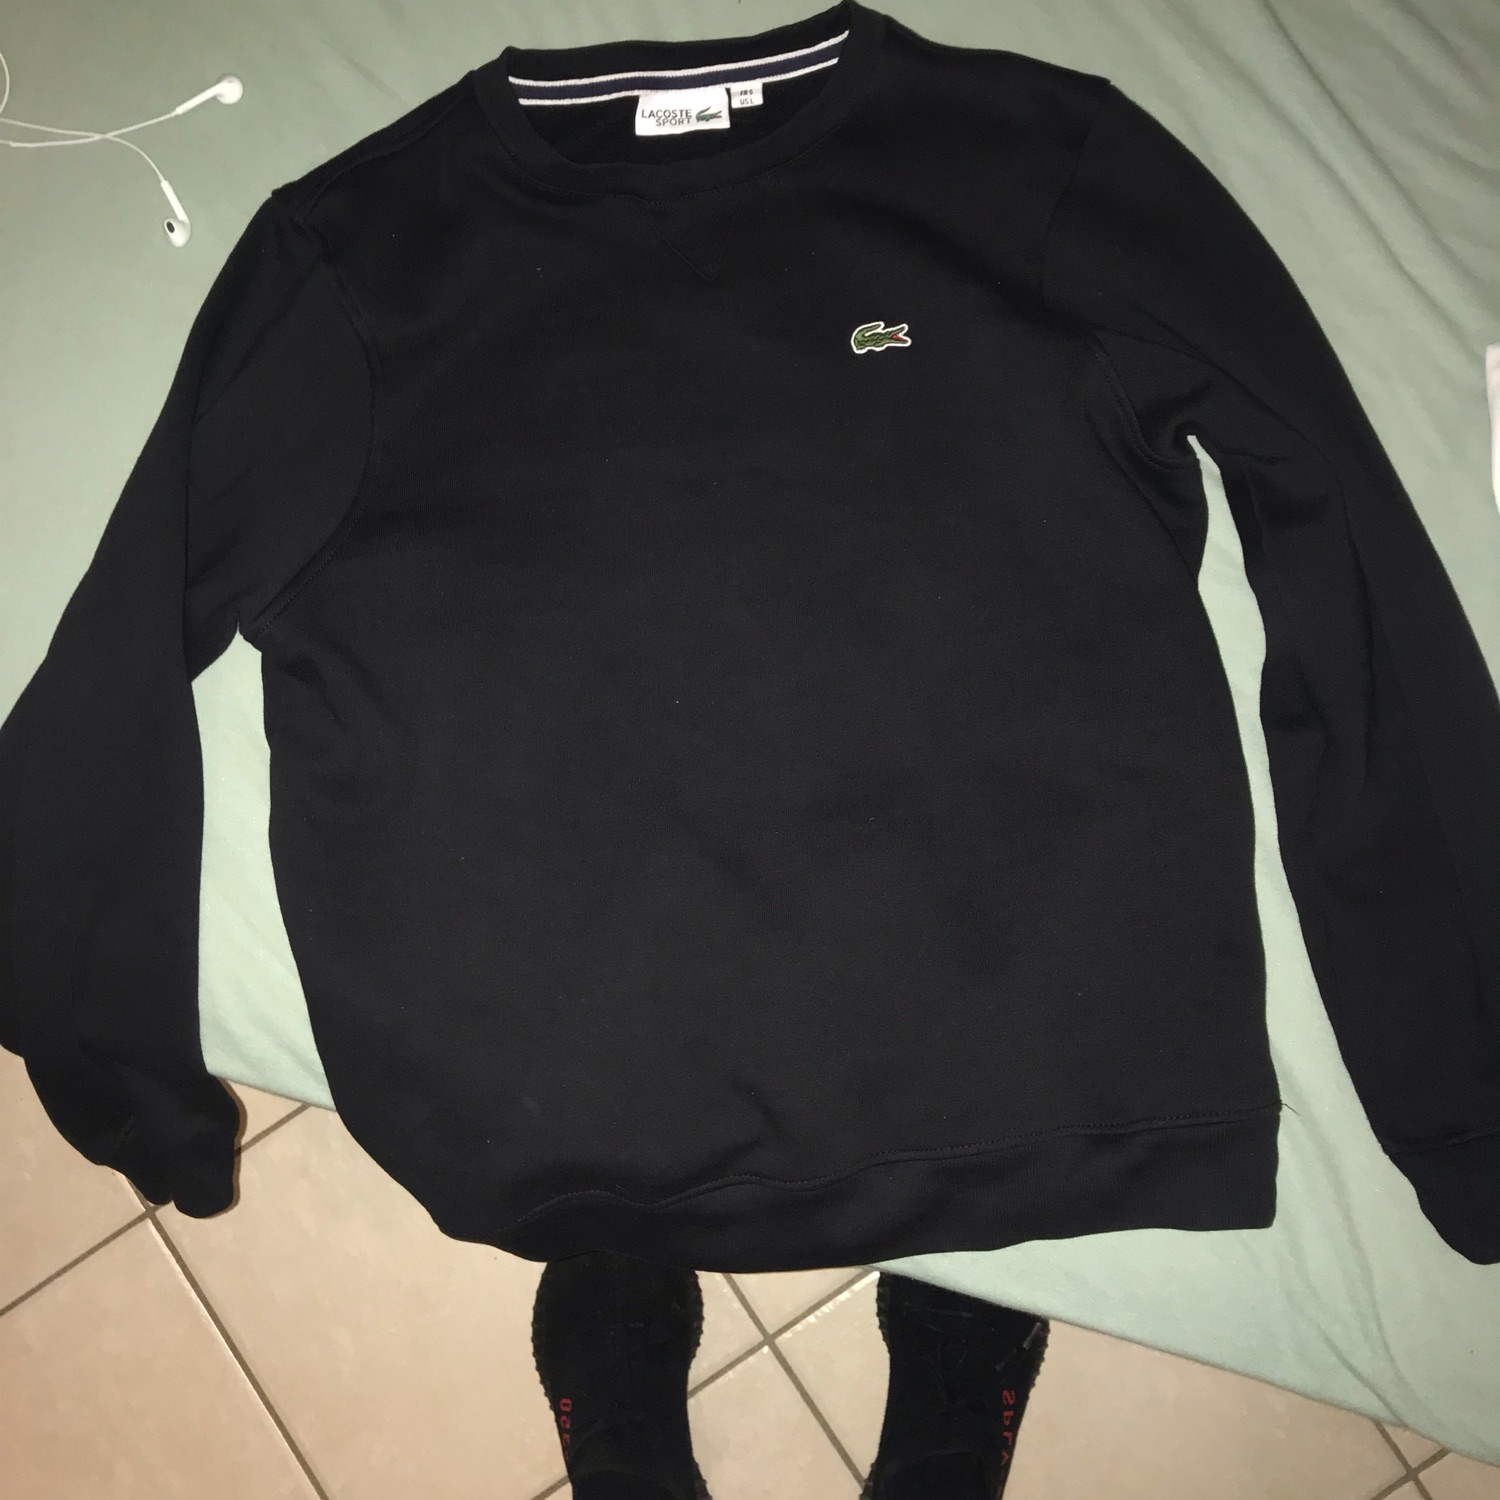 aliexpress grande remise Super remise Pull Lacoste